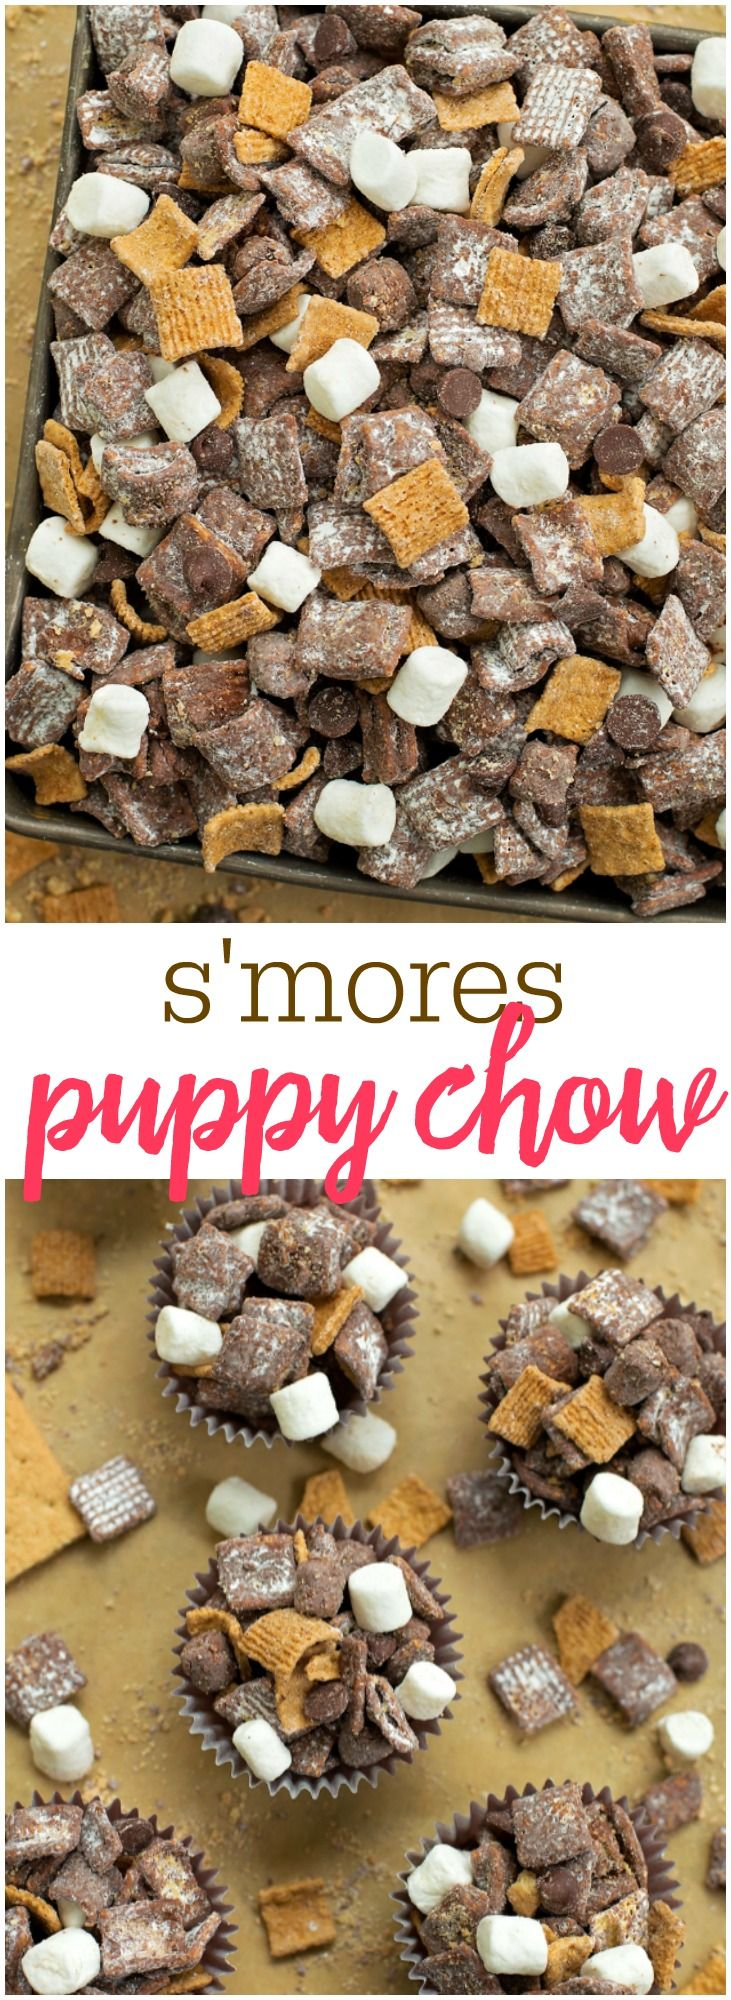 S'mores Puppy Chow - filled with chocolate, golden grahams and marshmallows - one of the best treats you'll make!